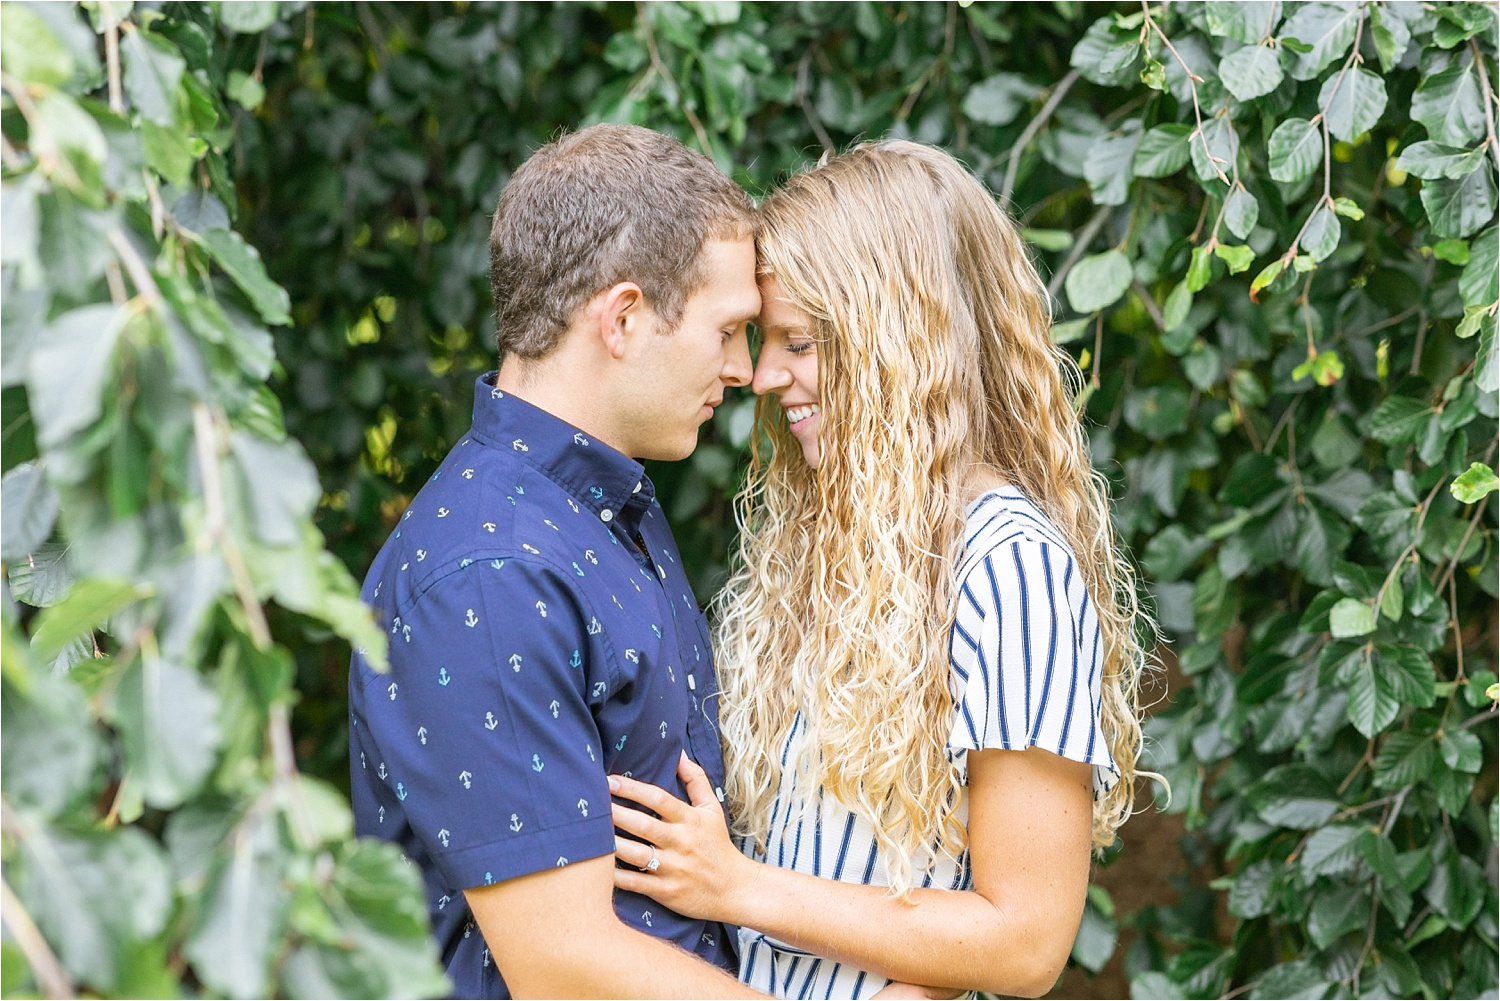 pretty fine art light and airy engagement photos at fellows riverside gardens in july 2019